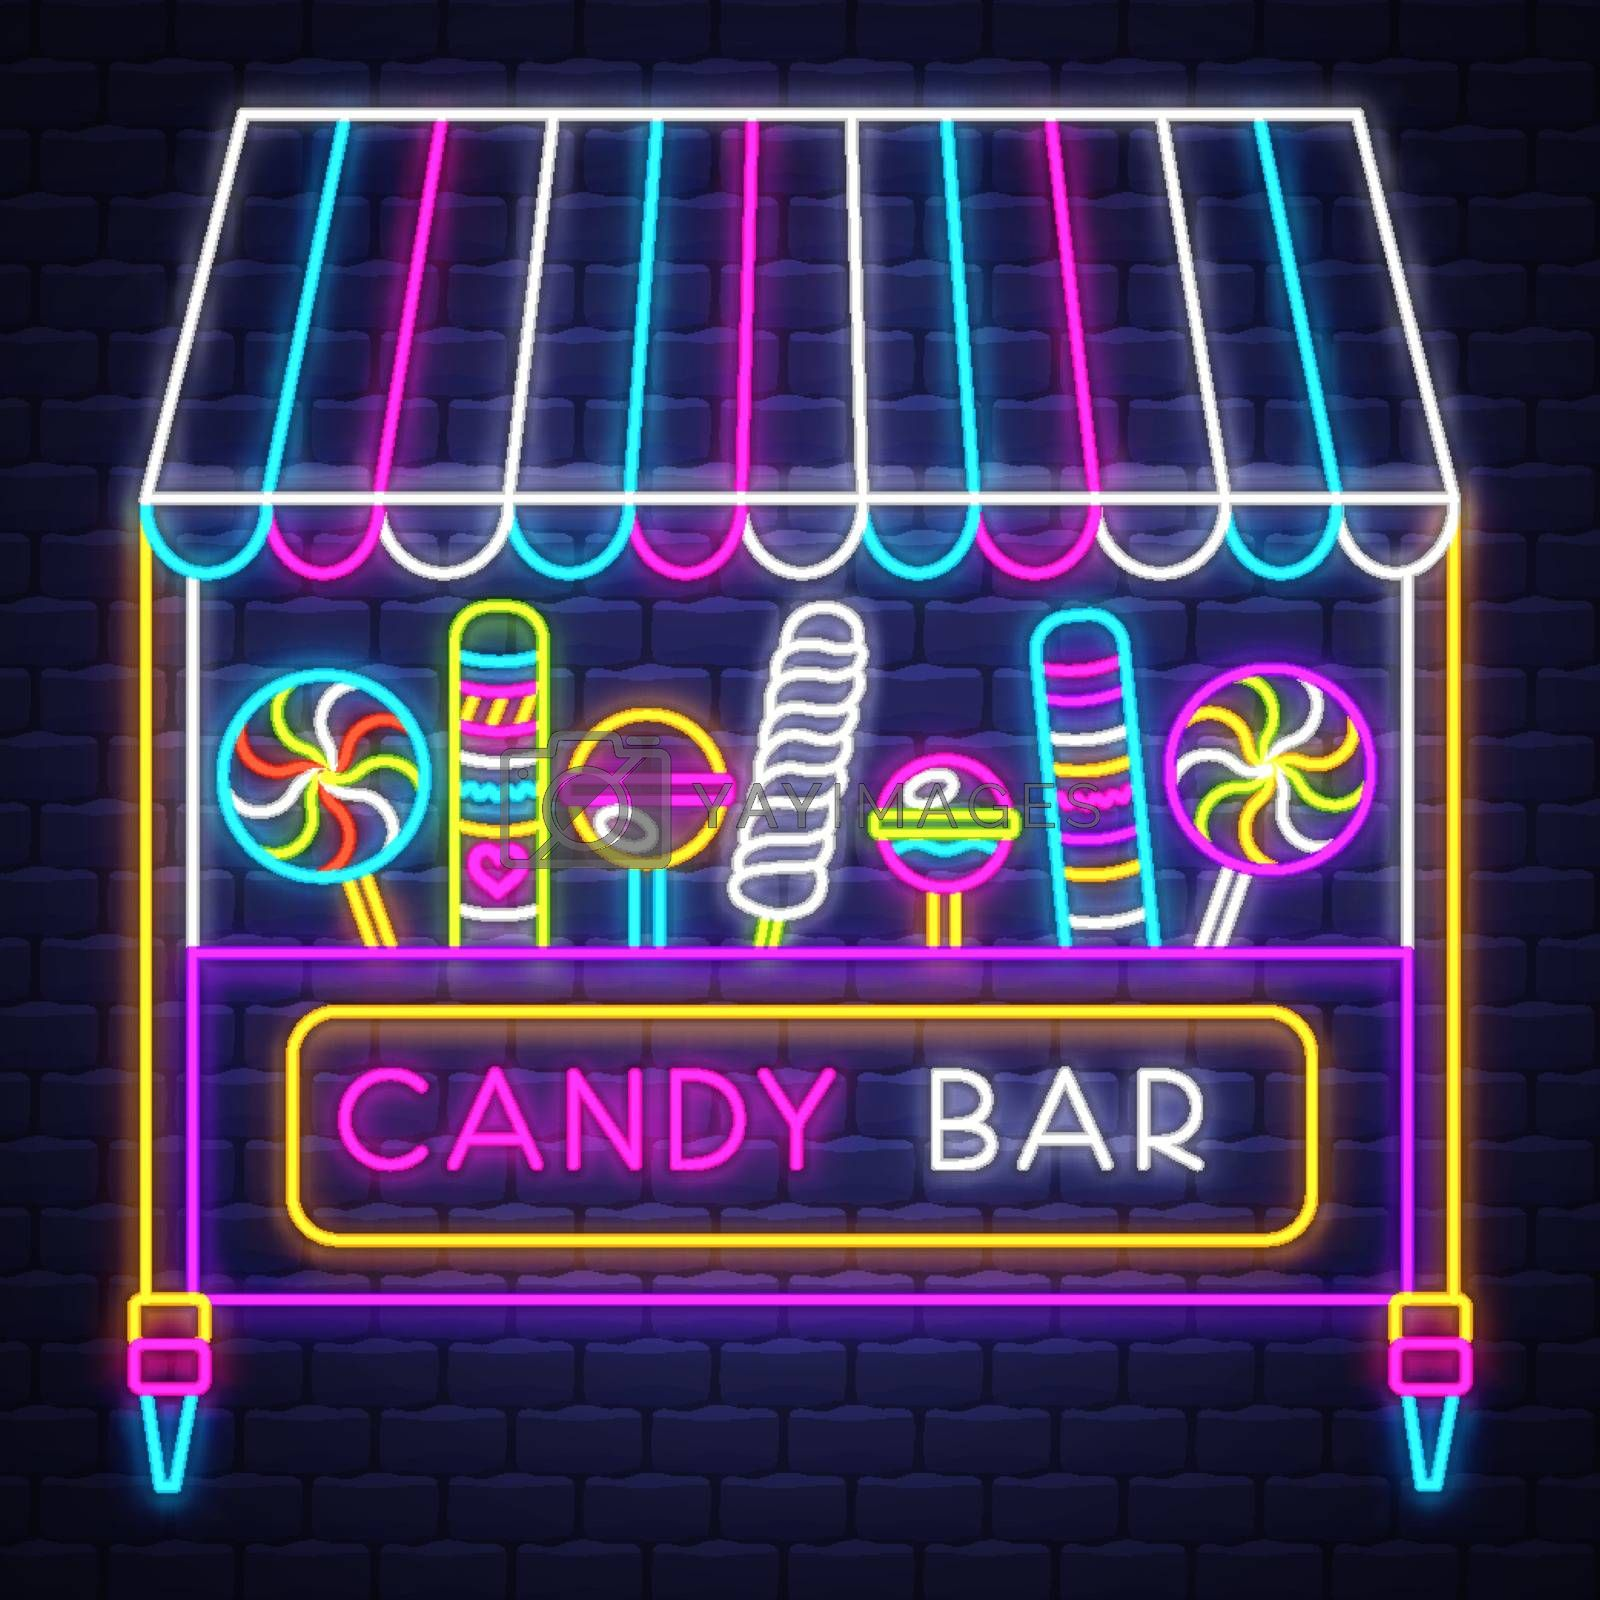 Candy bar - Neon Sign Vector. Candy bar - neon sign on brick wal by balasoiu